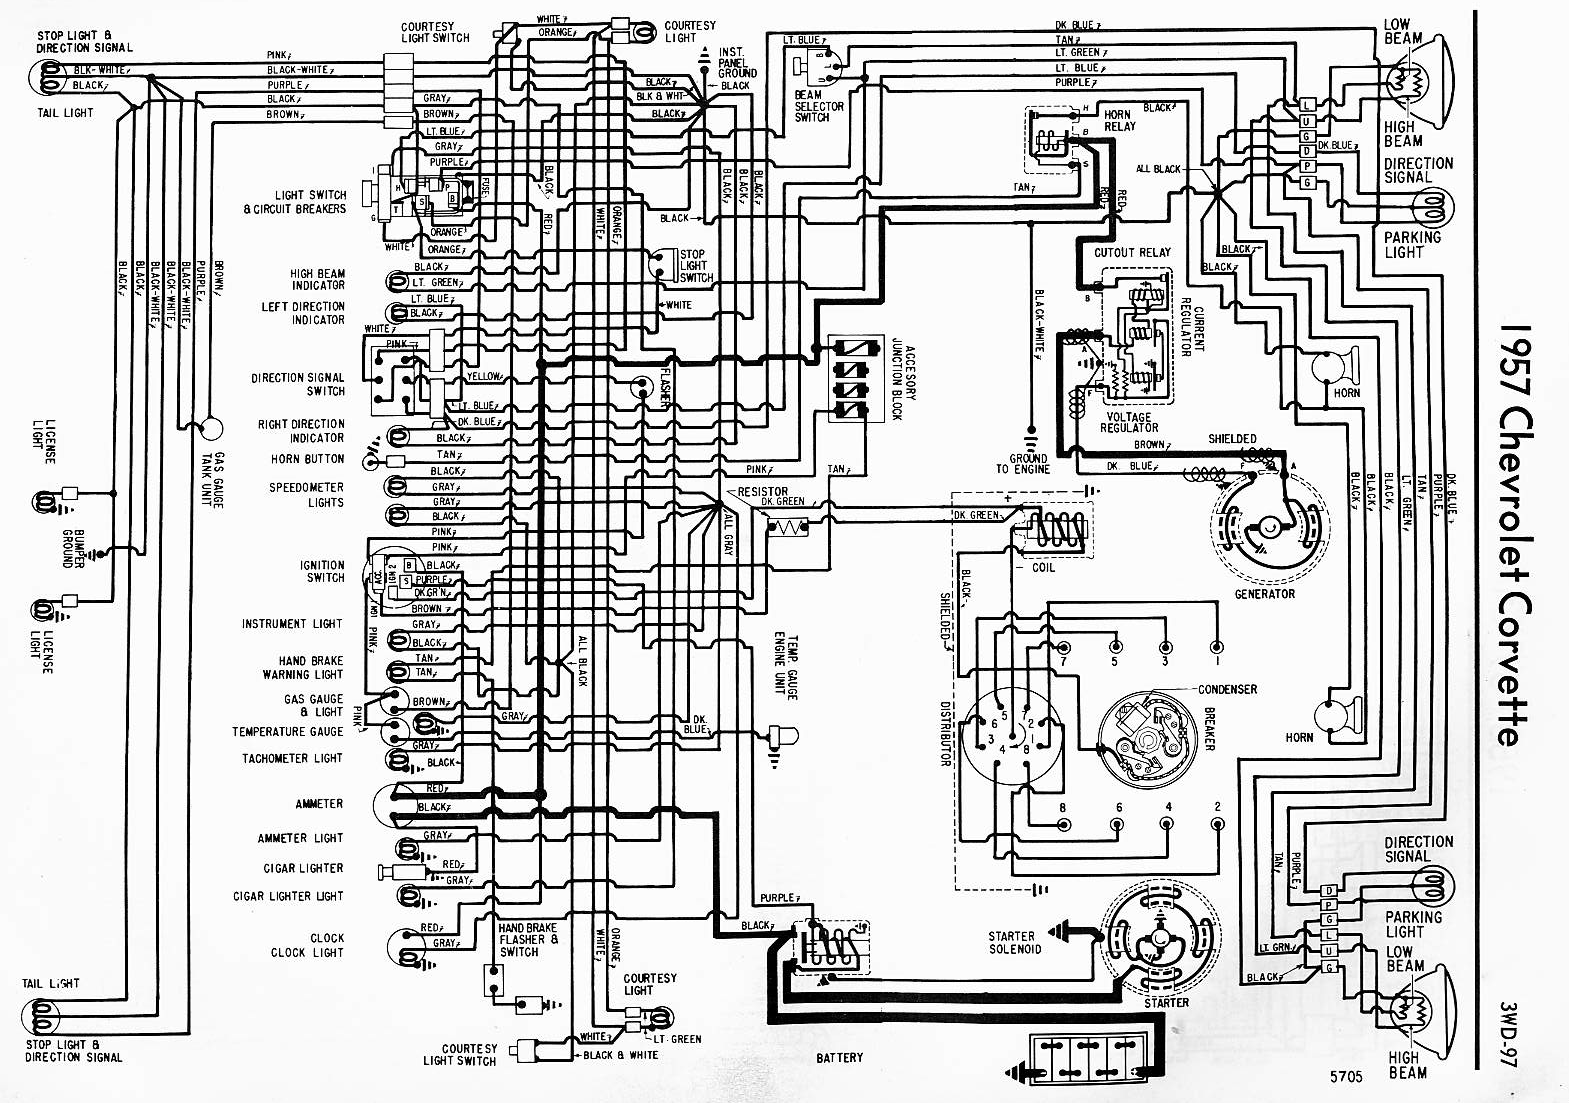 hight resolution of 77 chevy corvette wiring diagram wiring diagram show1977 corvette wiring diagram schematic wiring diagram split 1977